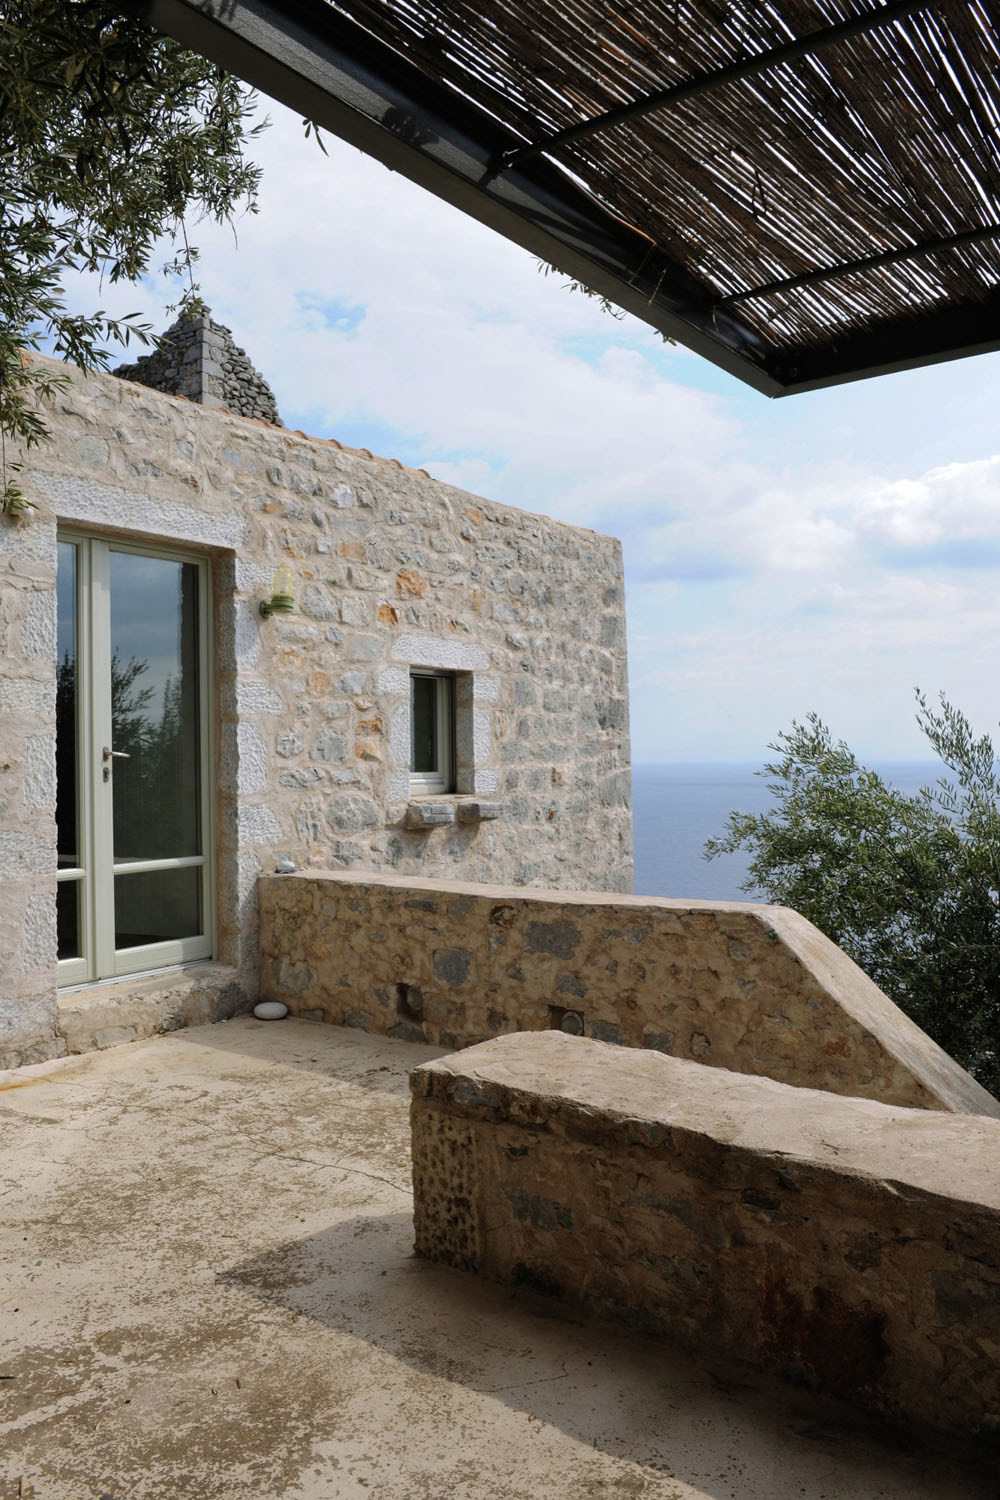 Historical Stone Building In Greece Transformed Into Contemporary Rustic Villa  iDesignArch